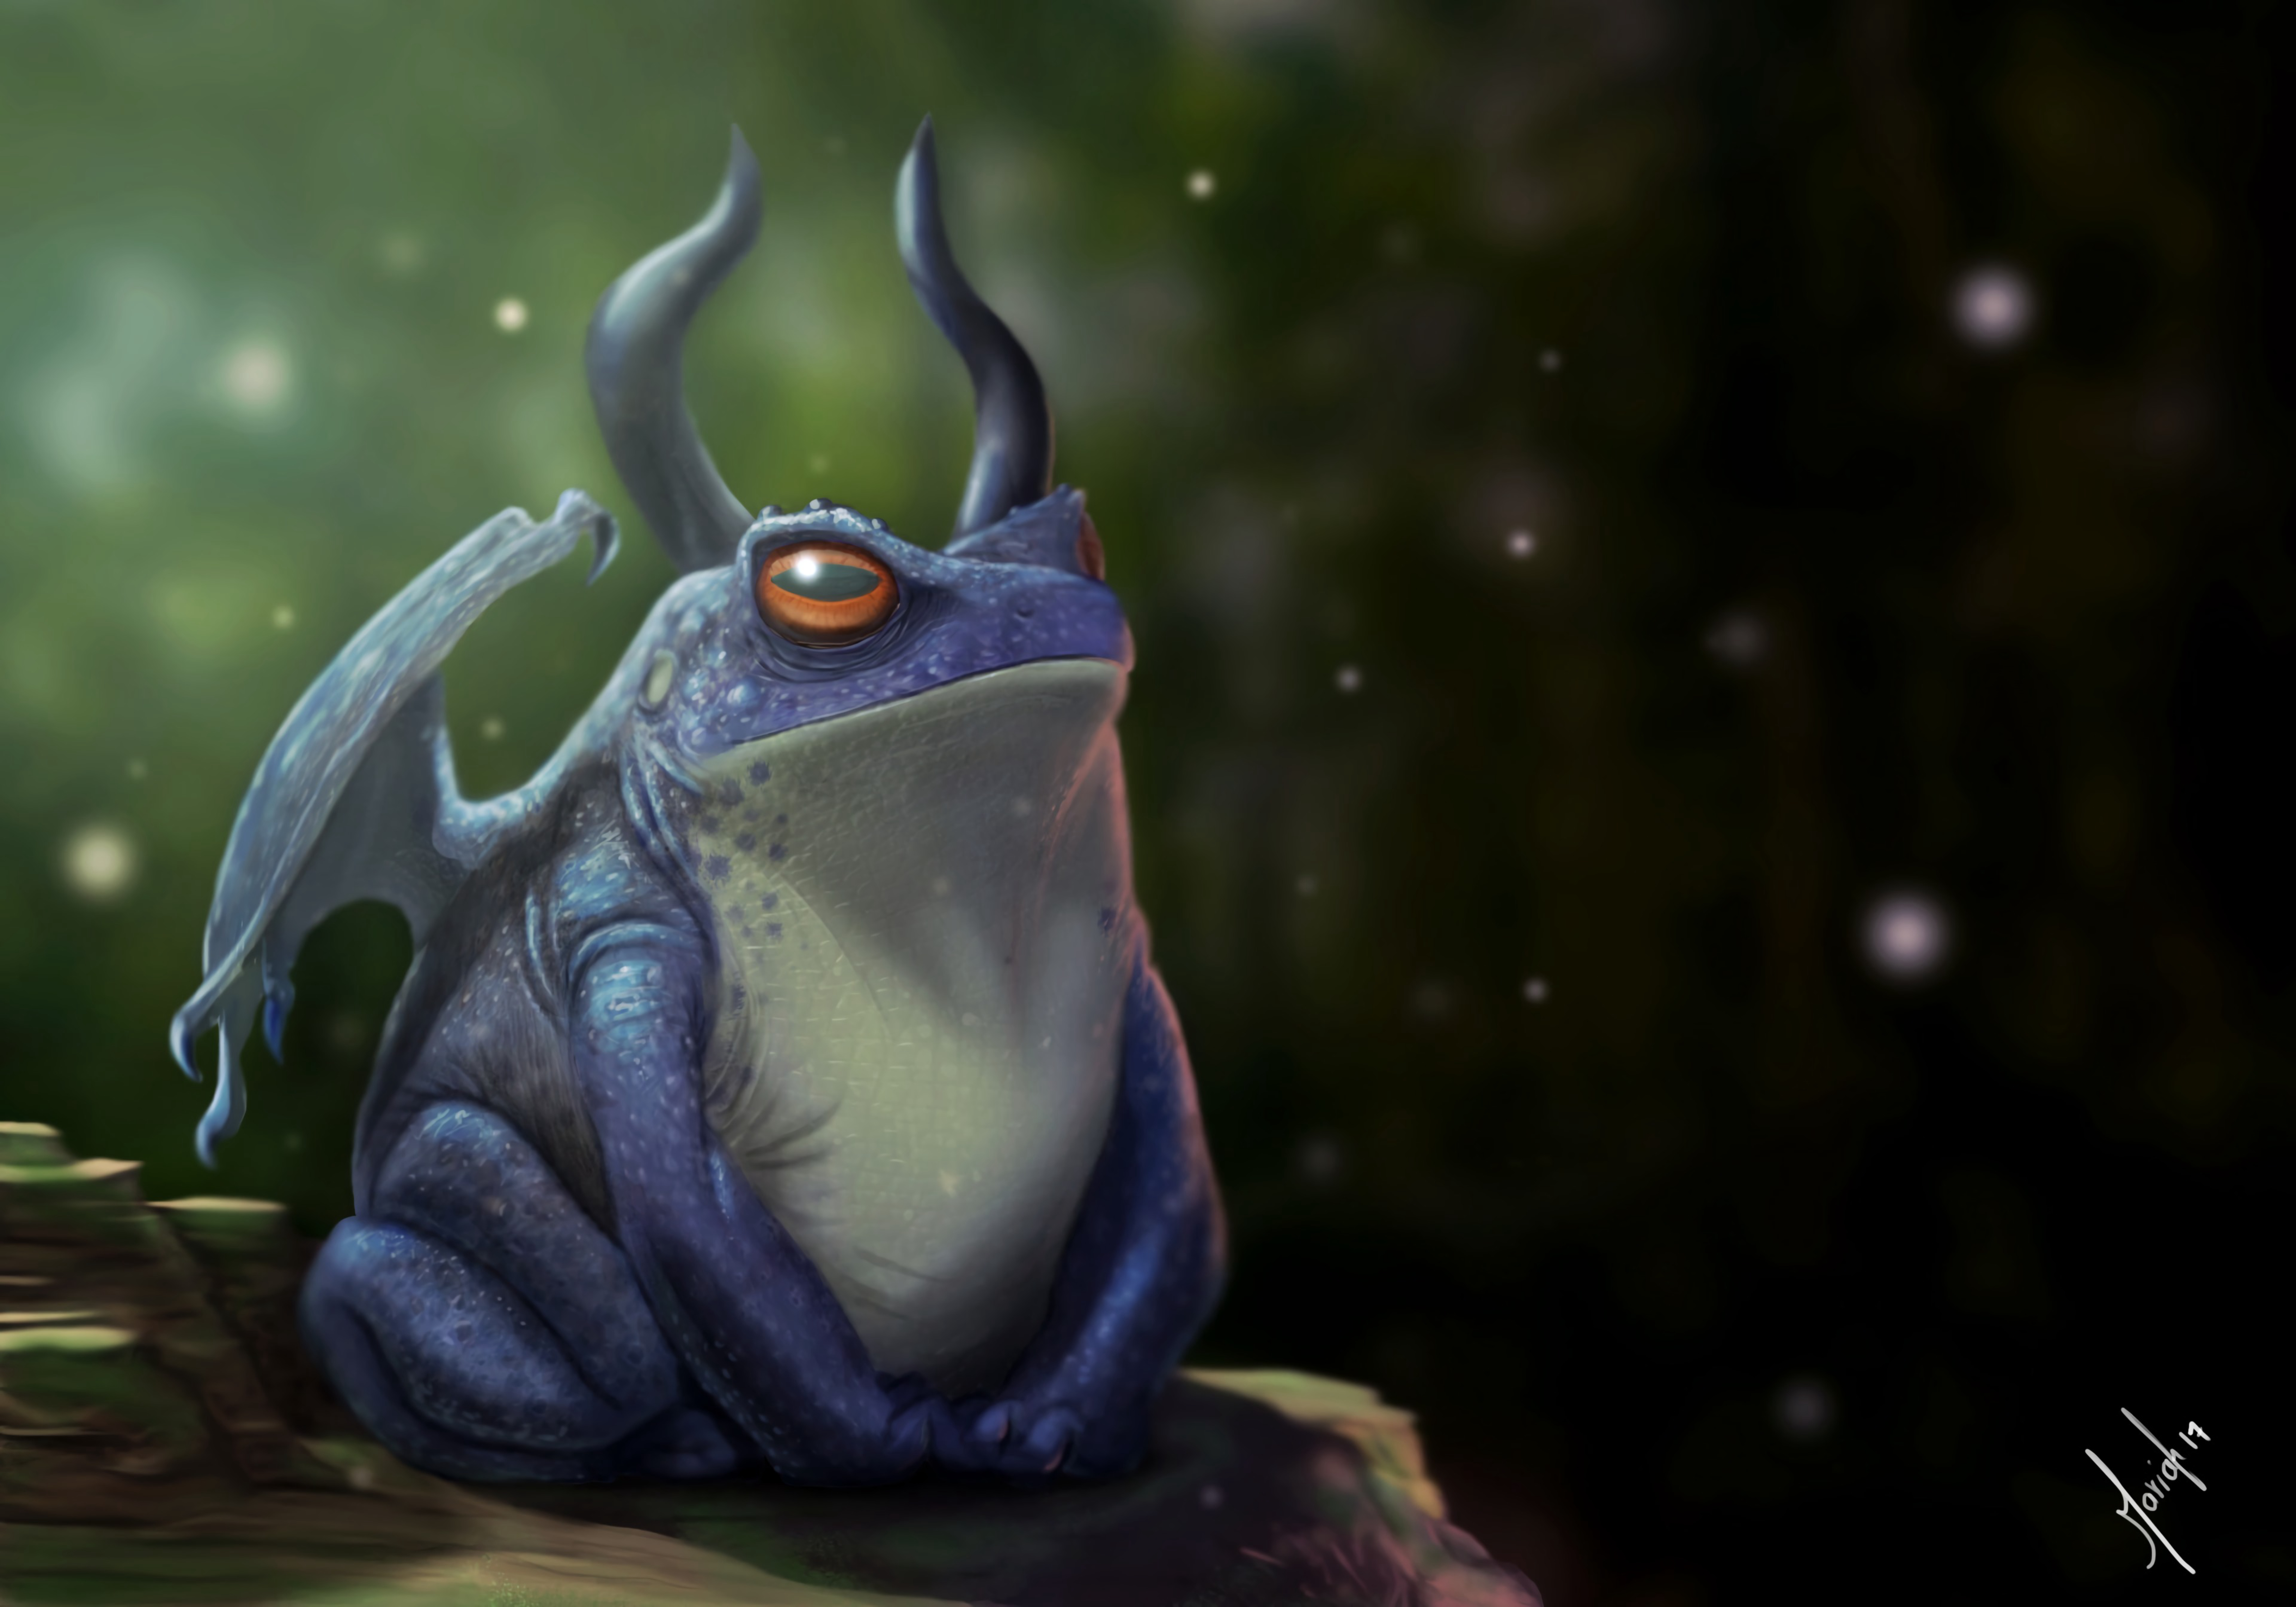 145886 download wallpaper Frog, Dragon, Horns, Art screensavers and pictures for free